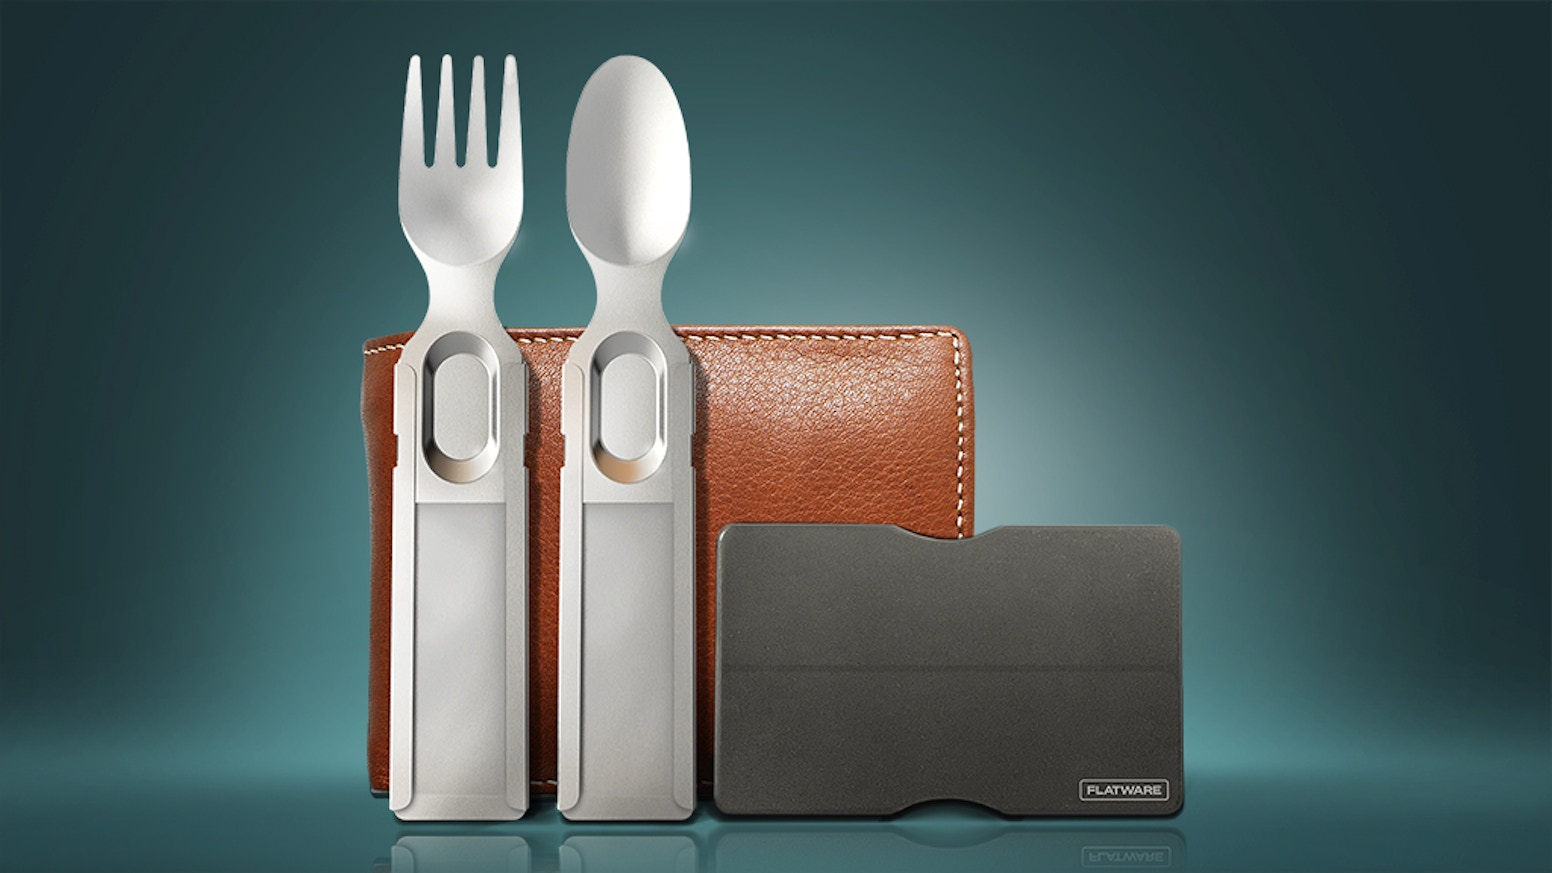 Reusable utensils that fit in your wallet, purse or pocket.